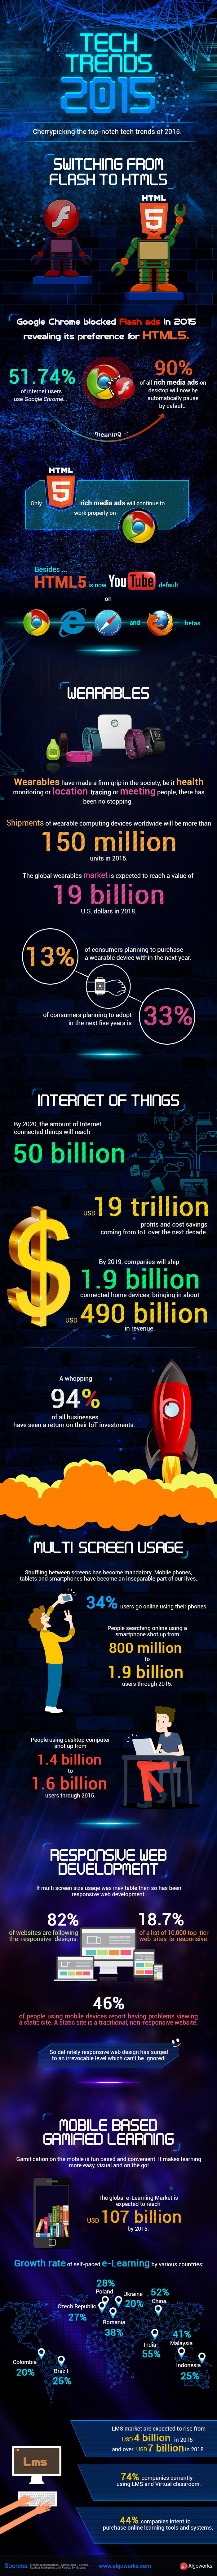 Tech Trends 2015 | An Infographic